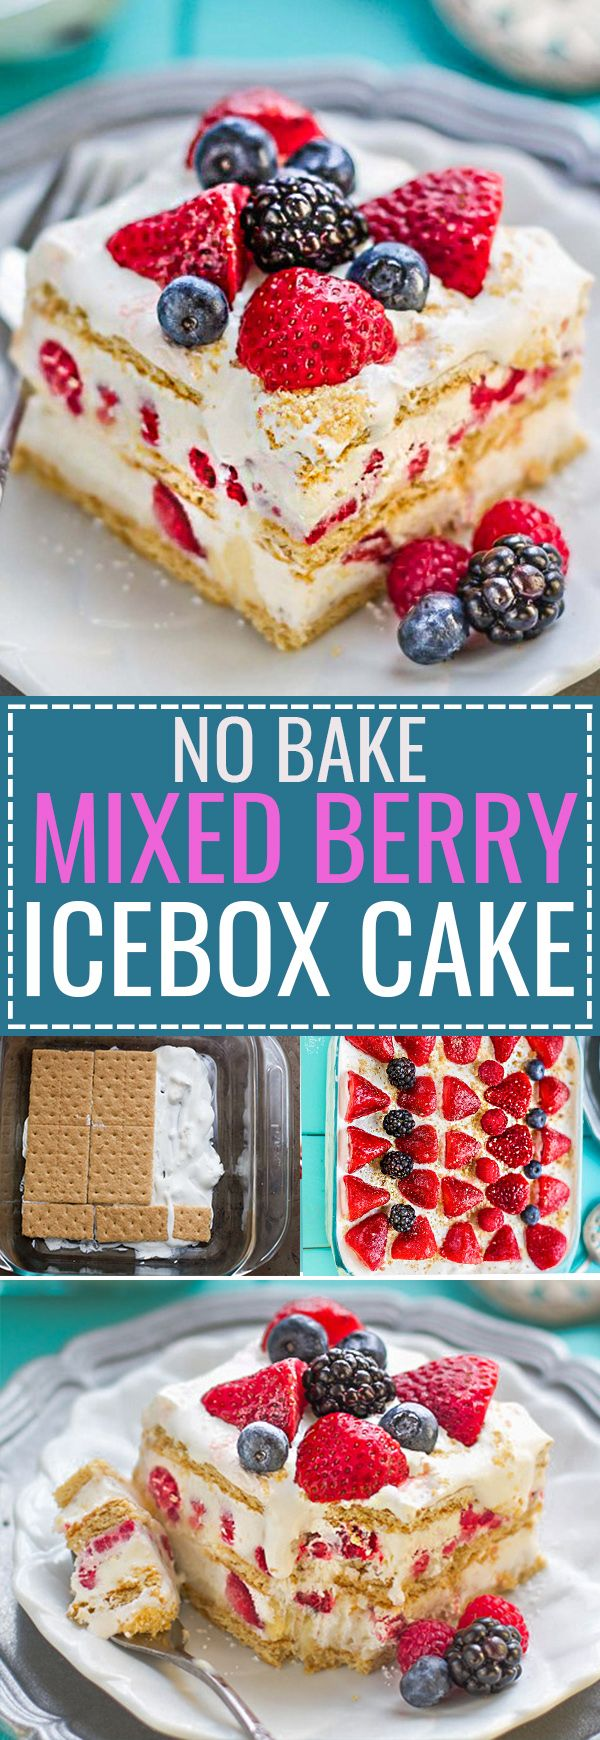 No Bake Mixed Summer Berry Icebox Cake is the perfect easy dessert for potlucks, barbecues, cookouts, picnics, baby showers, or any Fourth of July or Memorial Day party with the red, white and blue th (Mix Berry Shortcake)